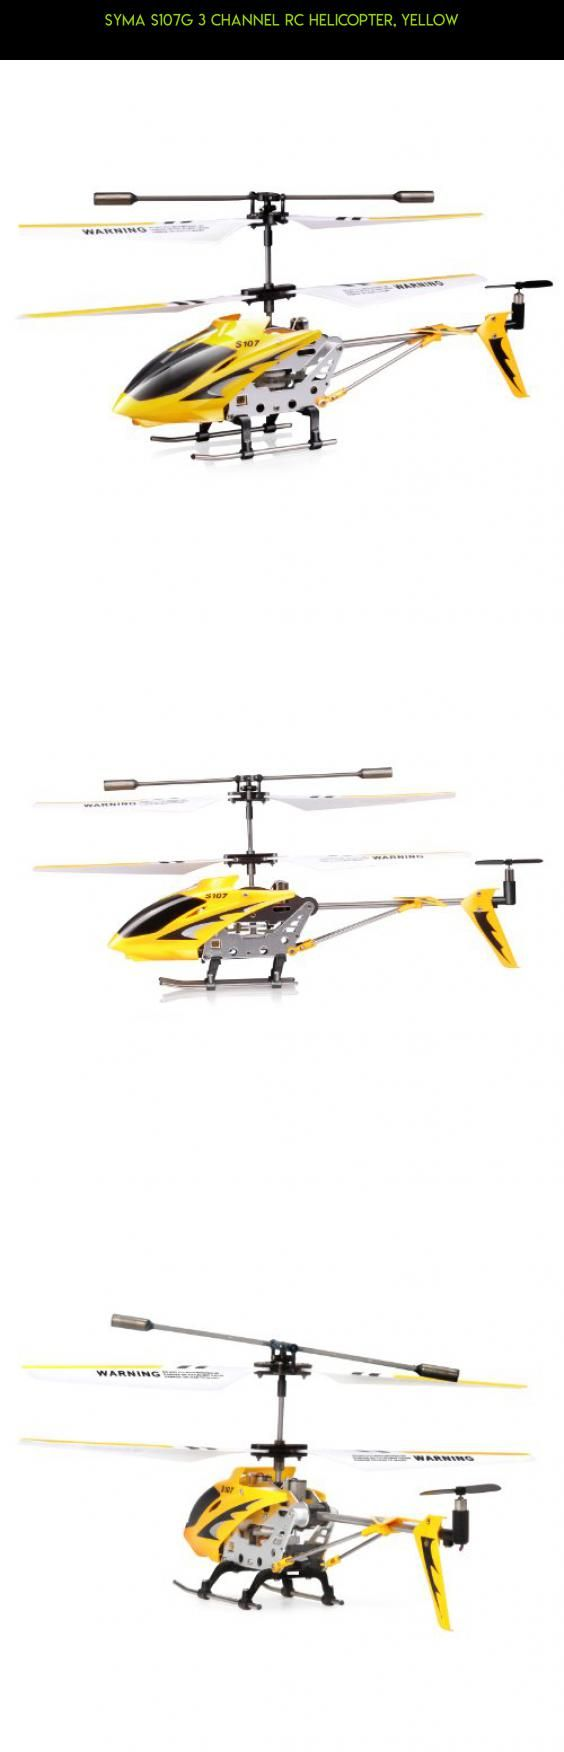 Syma S107G 3 Channel RC Helicopter, Yellow #parts #shopping #gadgets #products #plans #kit #107 #technology #tech #racing #drone #syma #camera #fpv